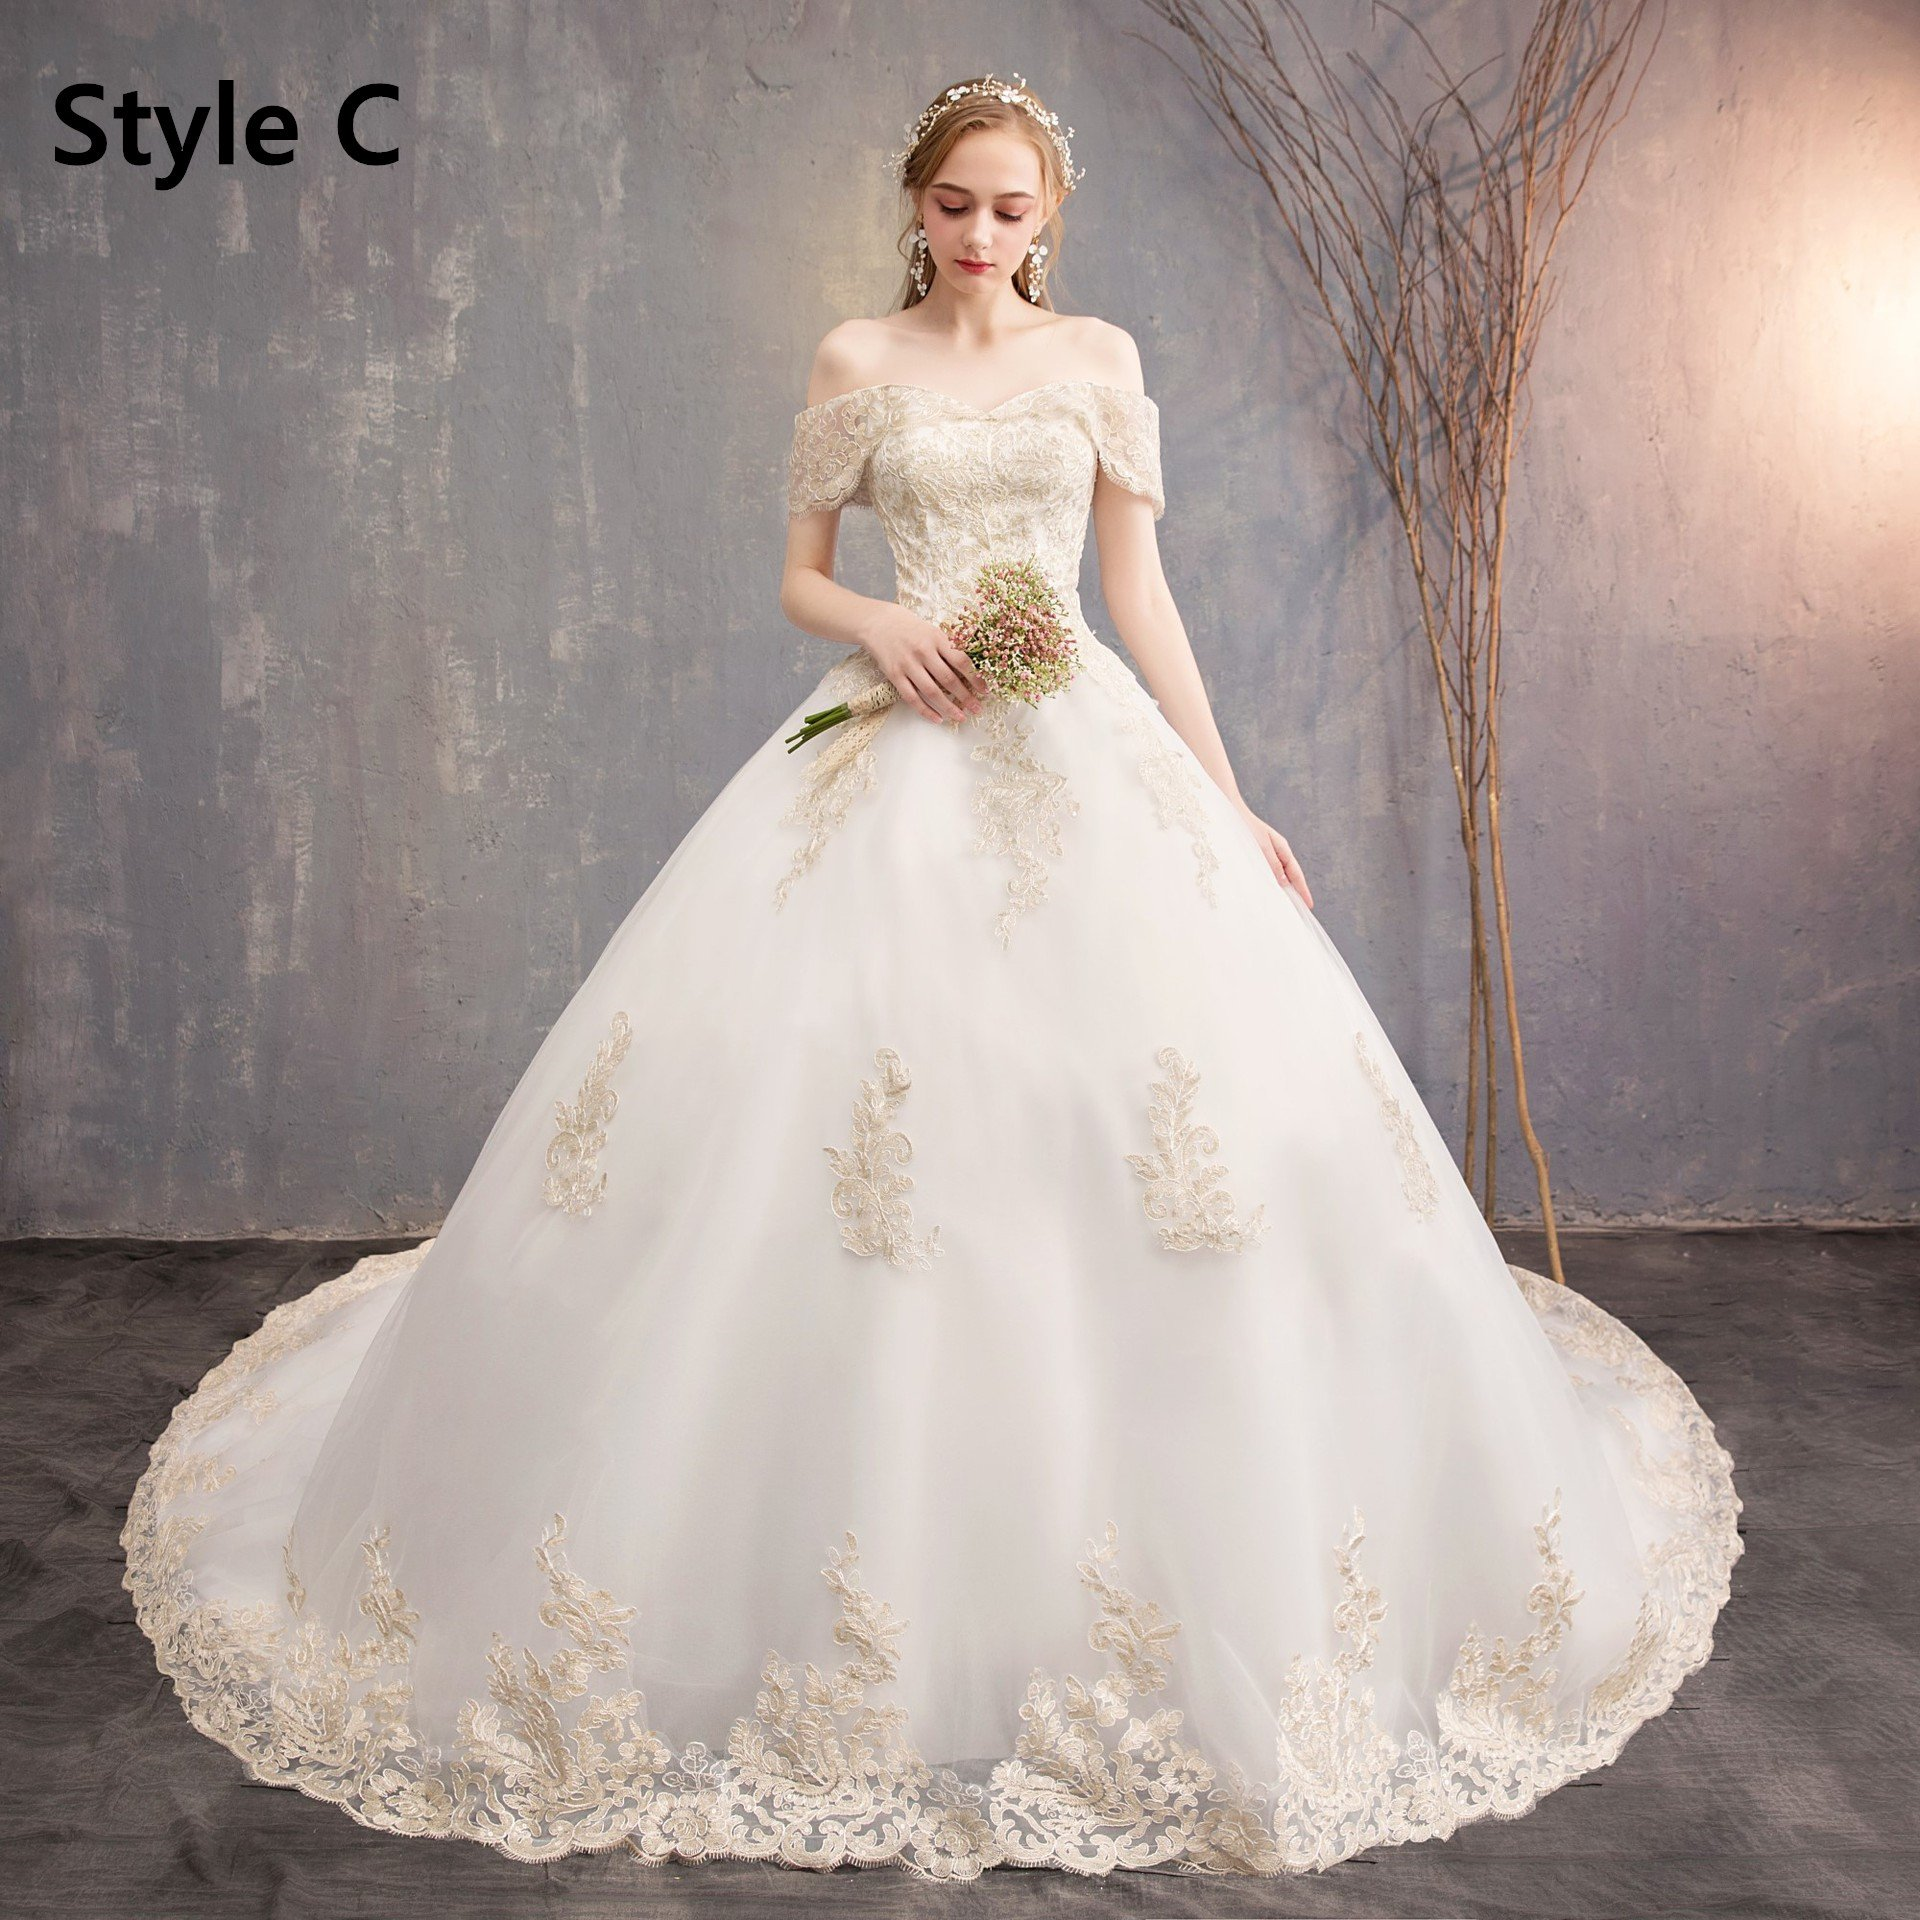 Lace Wedding Dresses 2020 New 715 Western Wedding Attire For Female Guests Mother Of The Groom Dresses Elegant Floral Dress Plus Size Shirt Dress Bridal Shows Near Me Best Online Wedding Dresses